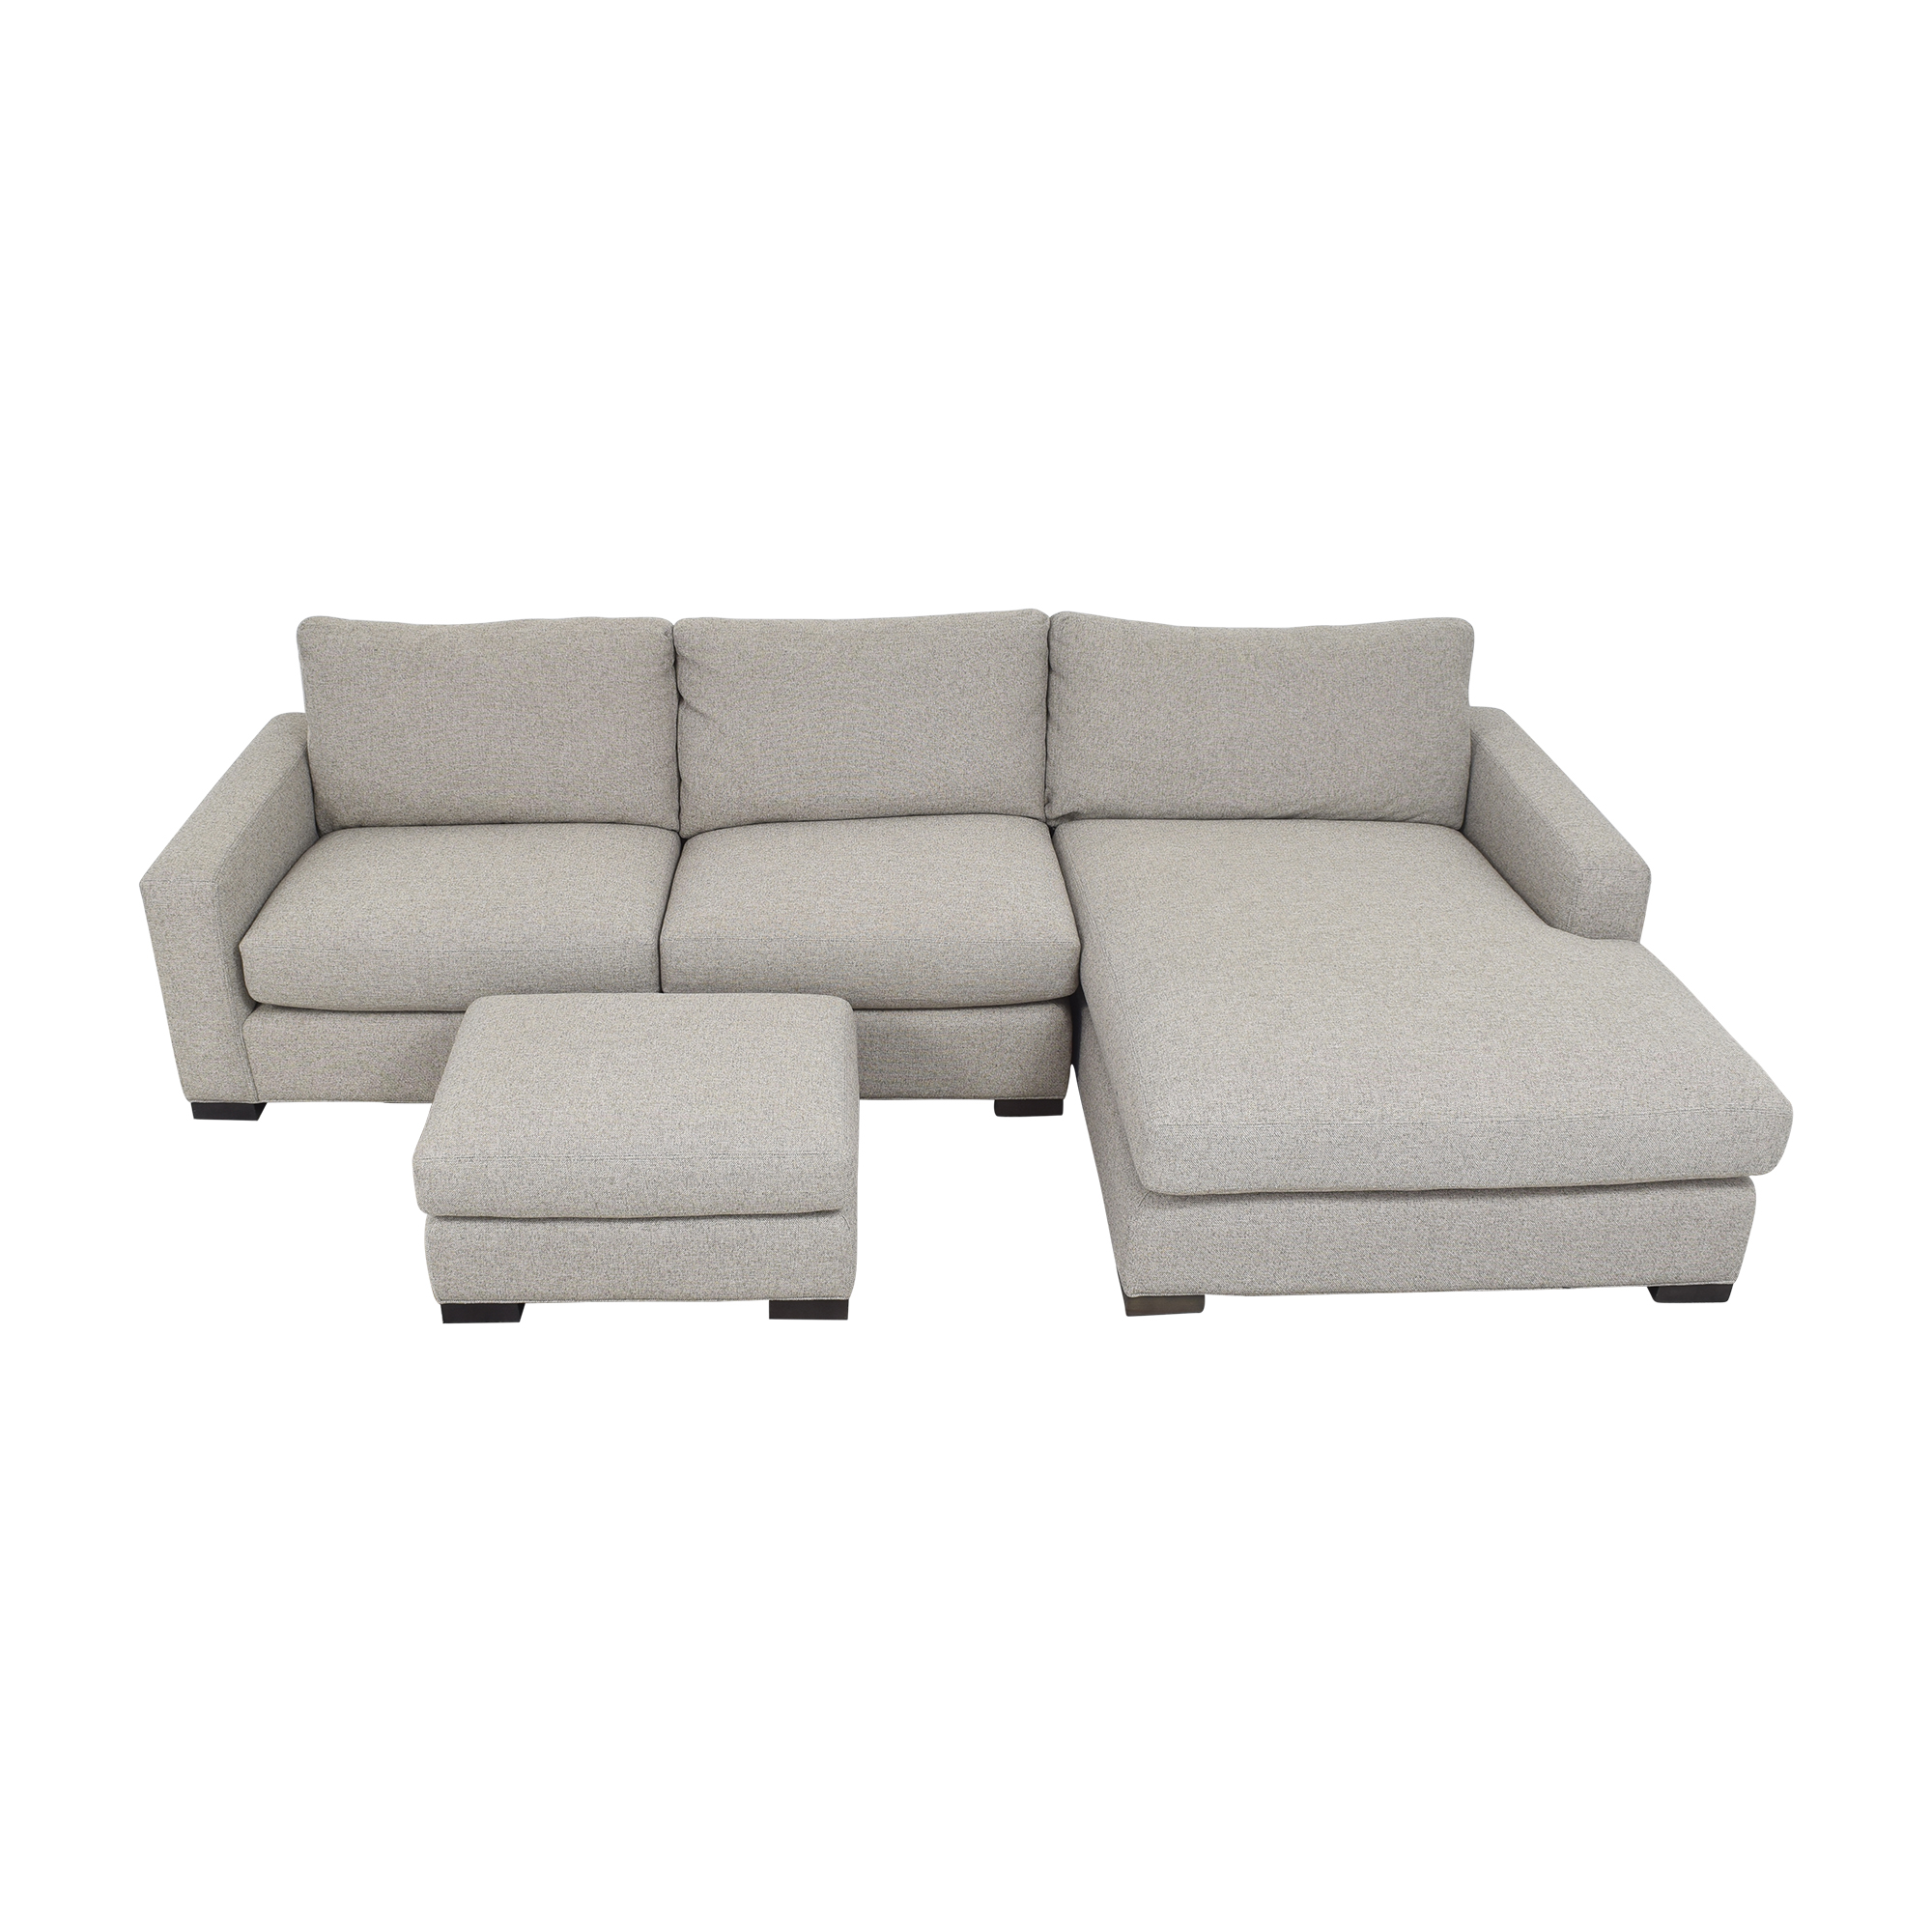 Room & Board Room & Board Metro Chaise Sectional Sofa and Ottoman Sofas